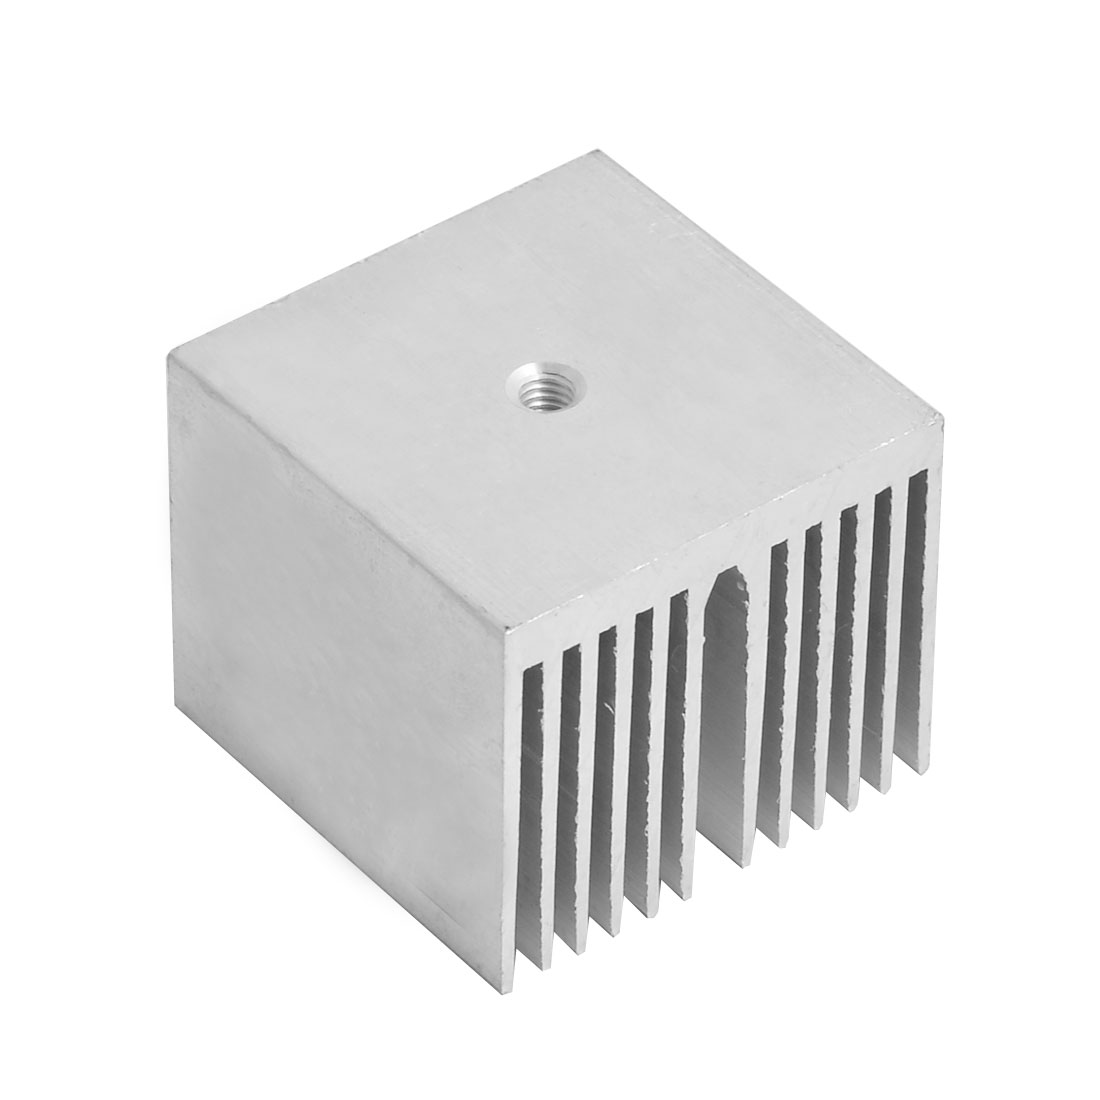 Aluminium Heat Diffuse Cooling Fin Cooler Silver Tone 35mm x 35mm x 30mm